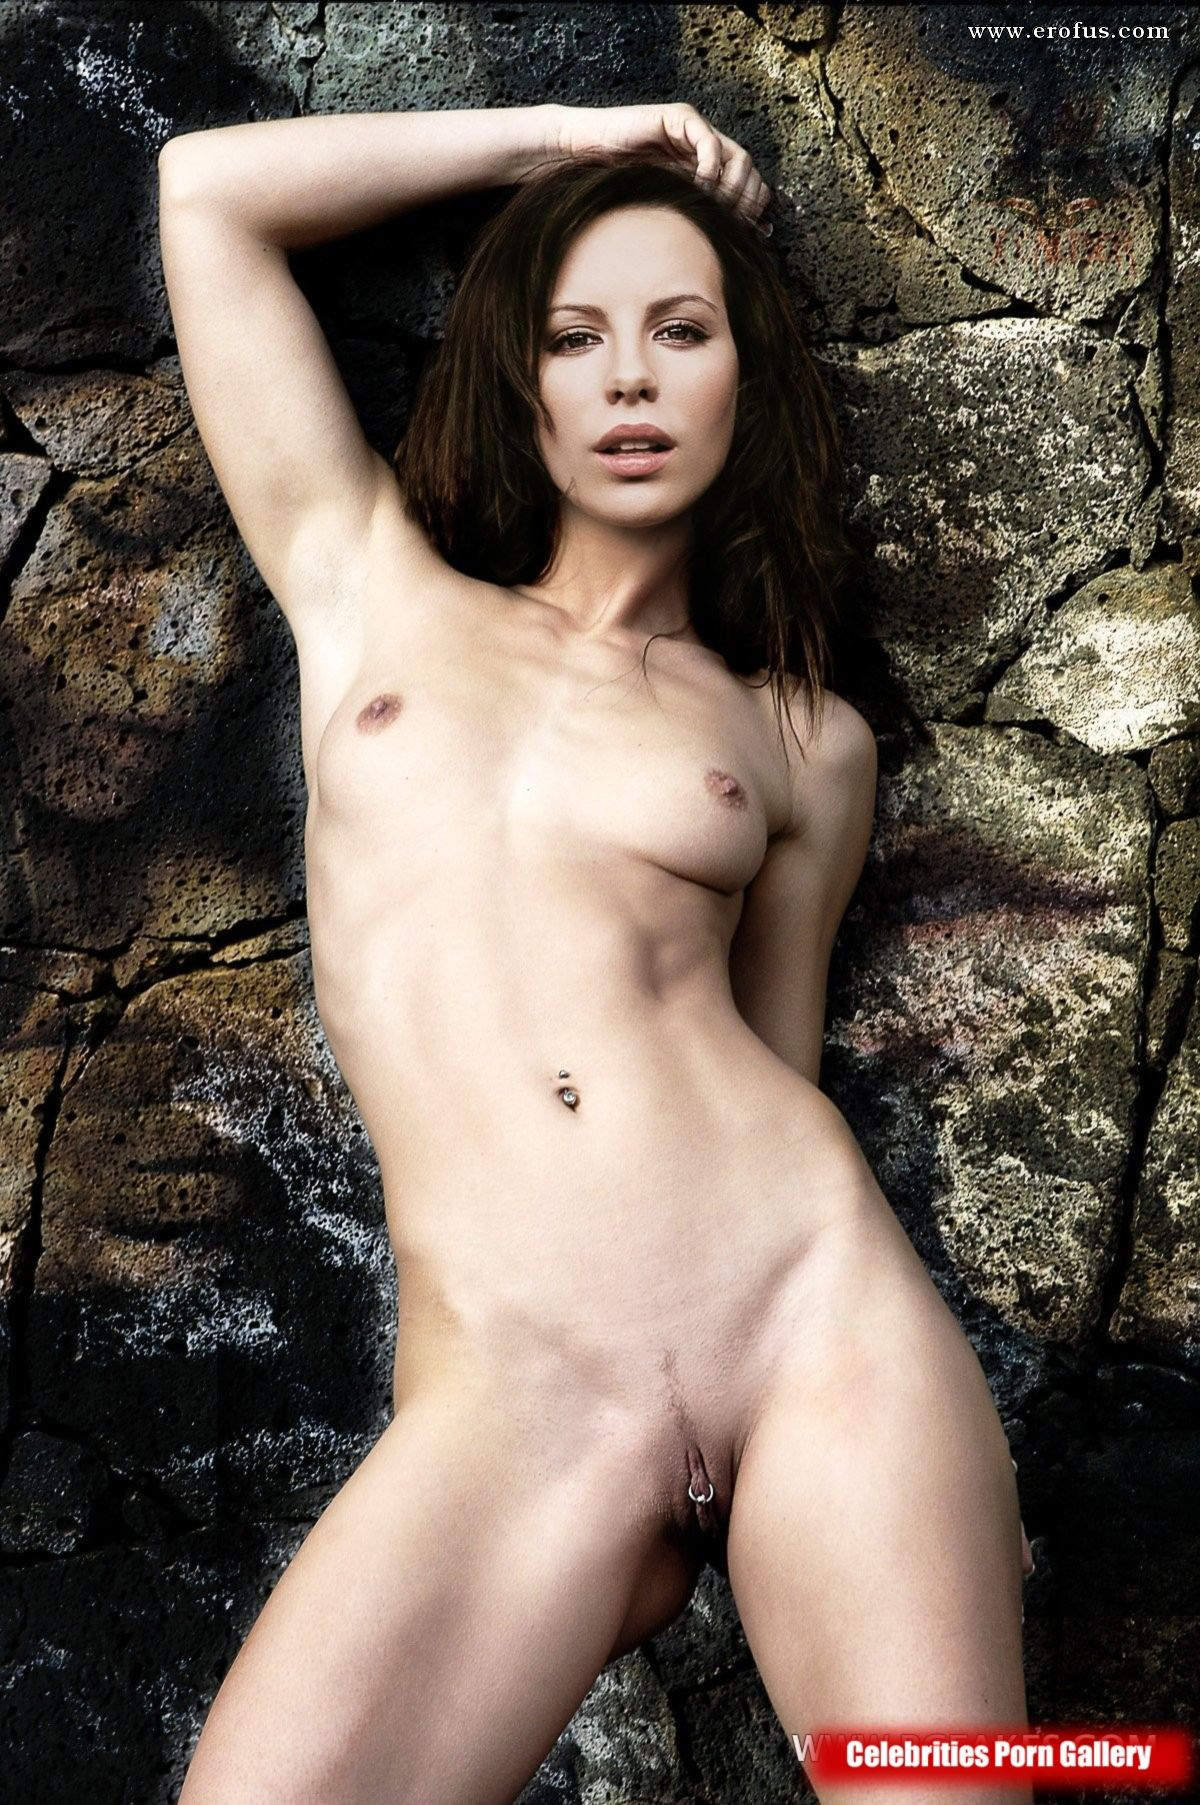 kate-beckinsale-nudes-sexy-plus-girls-nude-photos